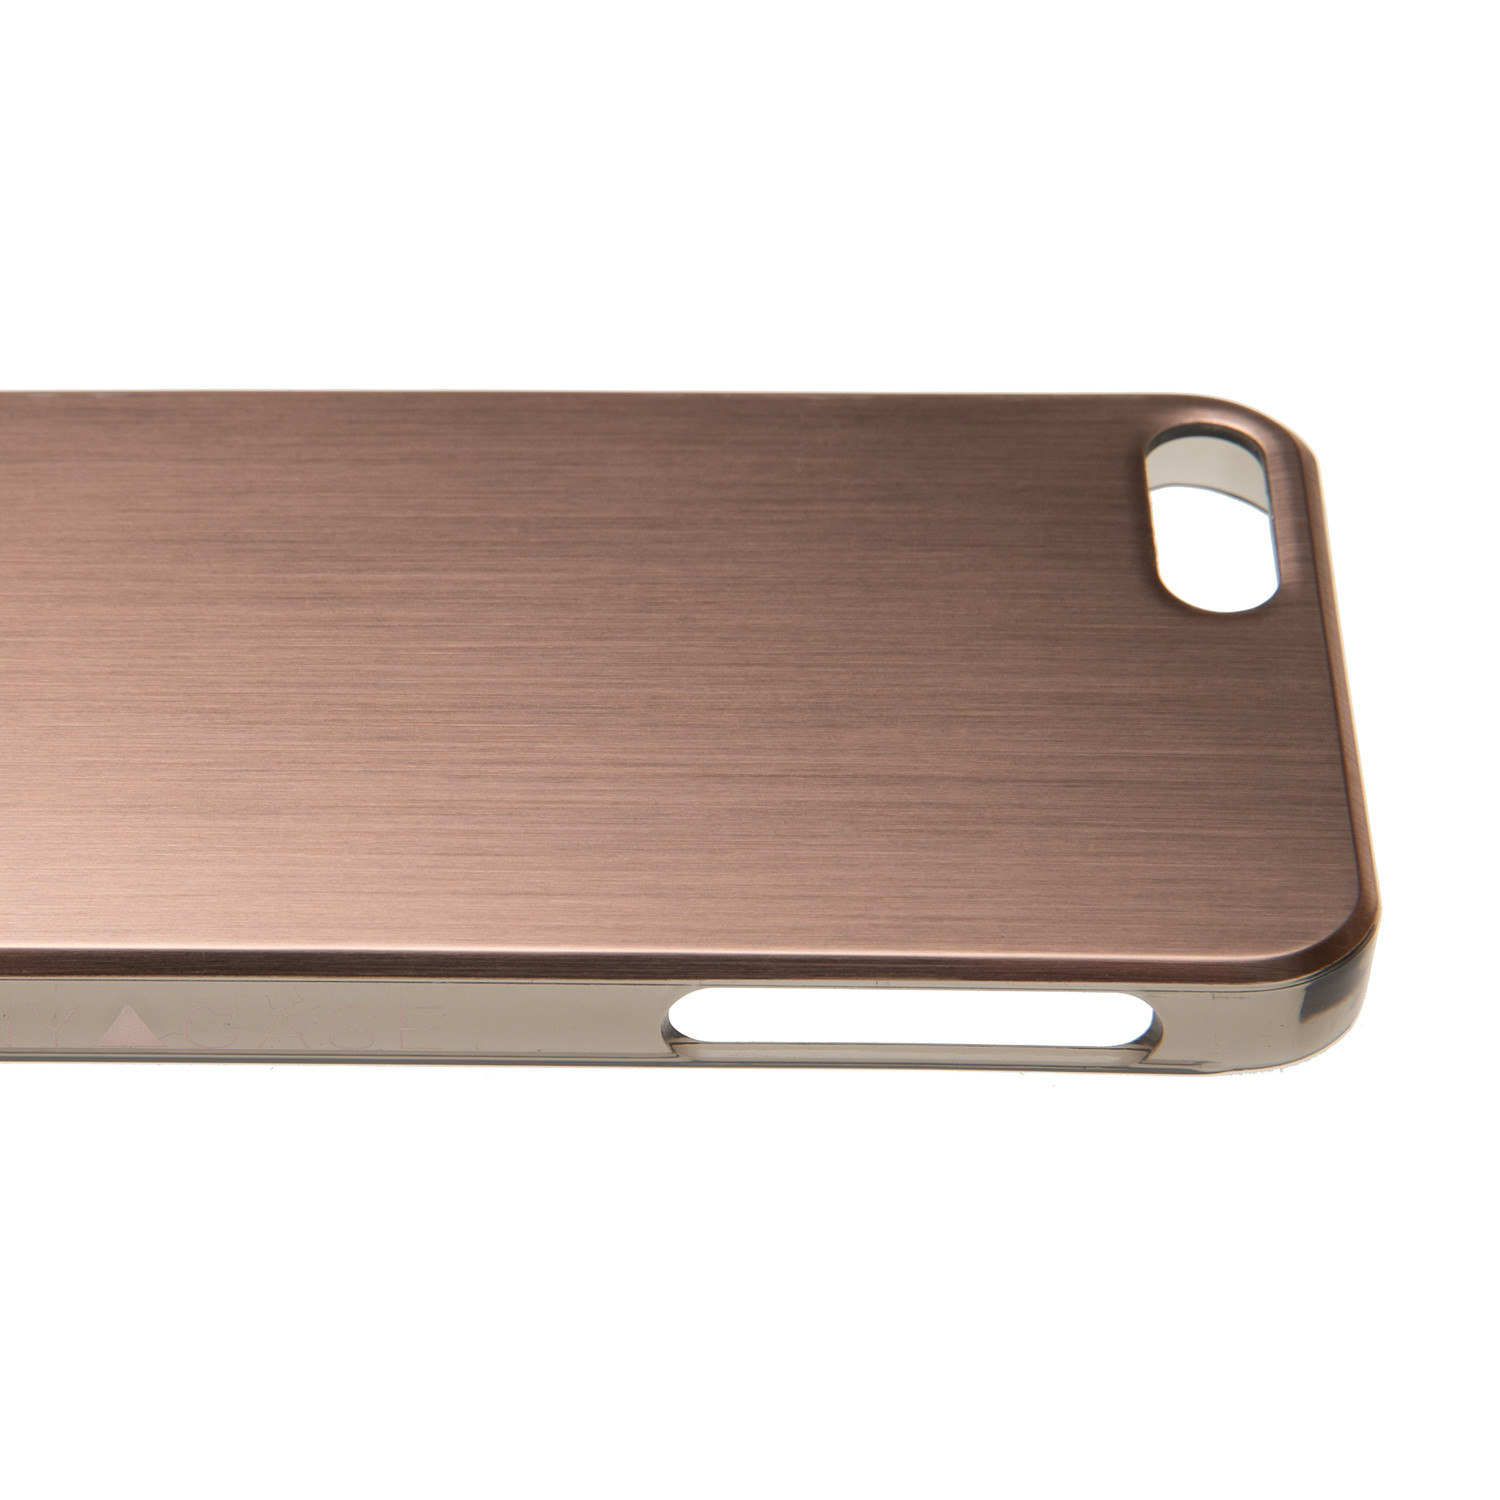 ... Metallic Rose Gold // IPhone 5/5s Felony Case Touch - 1500x1500 - jpeg